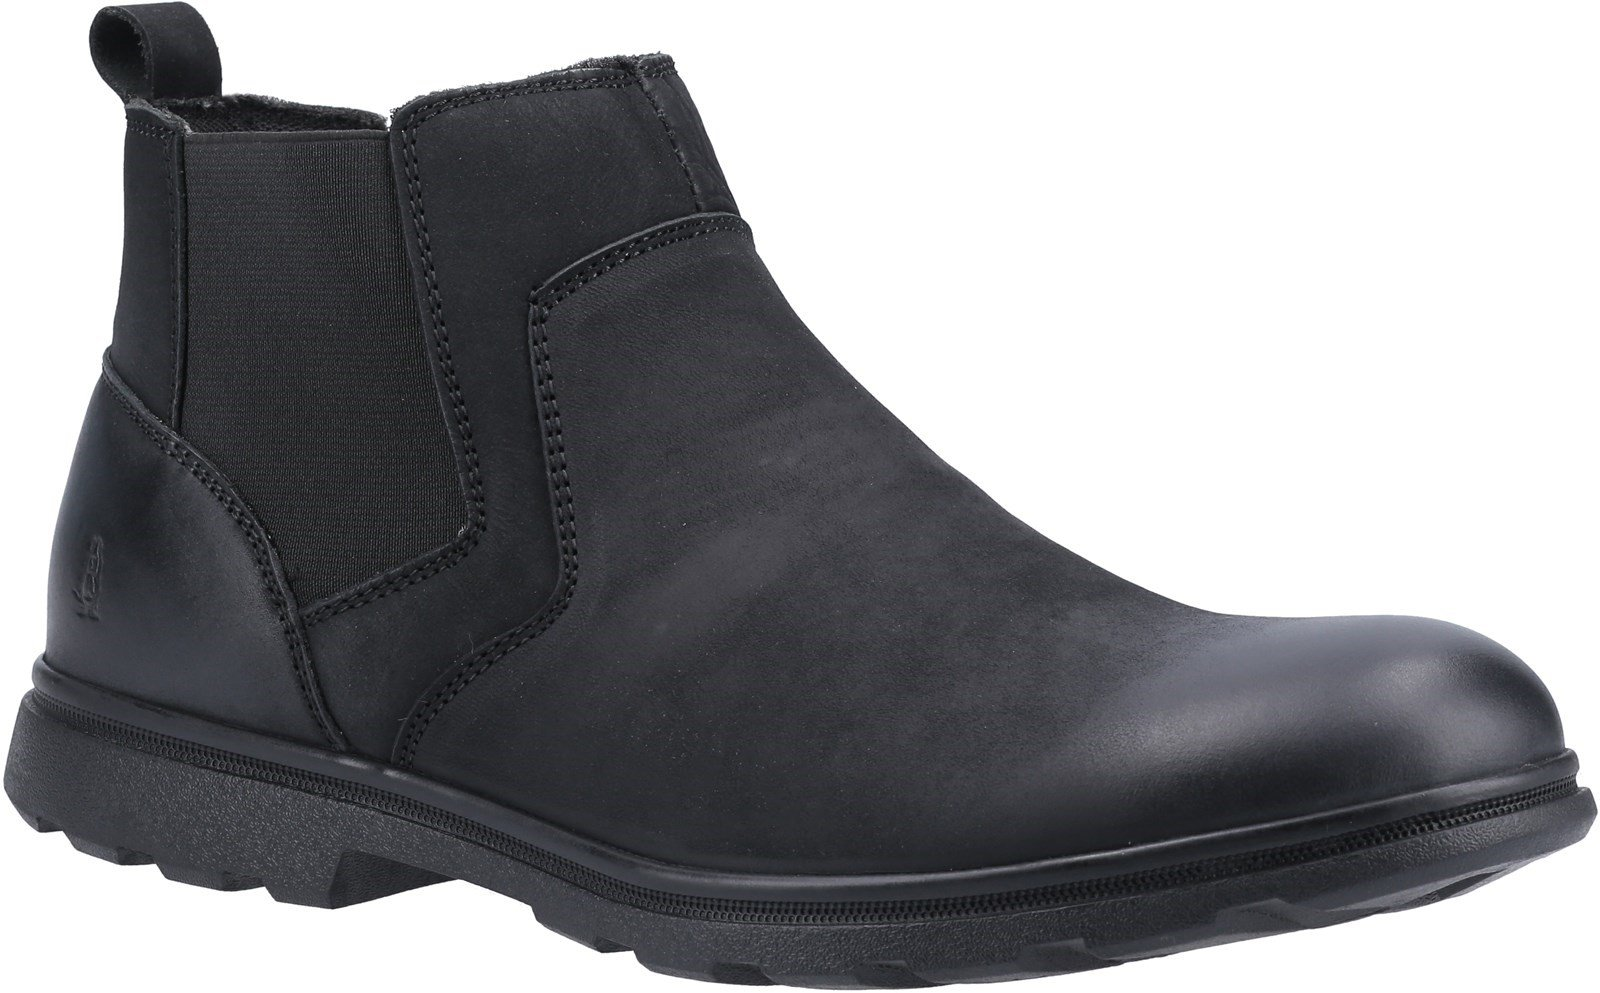 Hush Puppies Men's Tyrone Boots Various Colours 31245 - Black 6